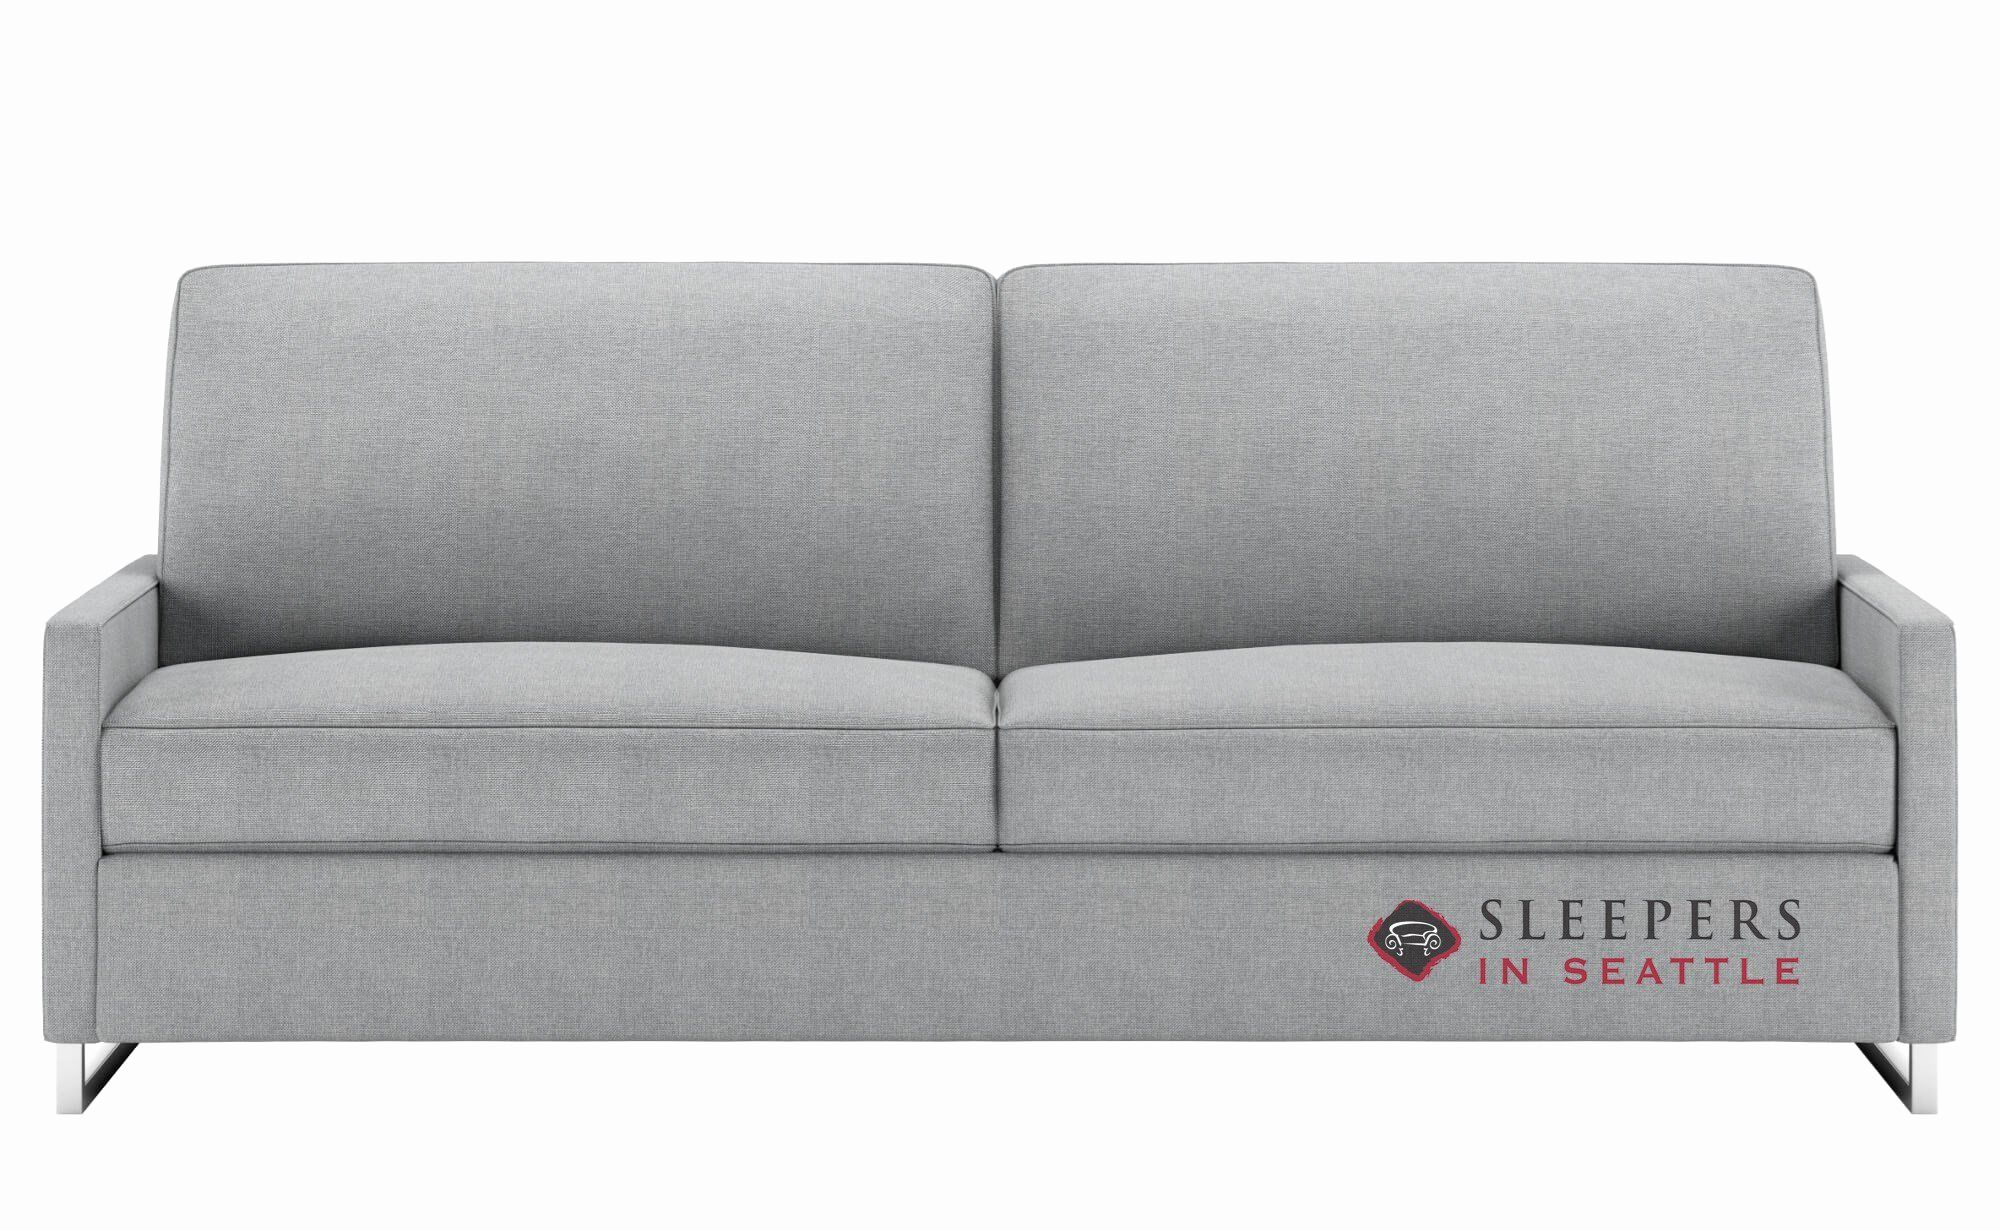 New American Leather Sleeper Sofa Price Photos American Leather